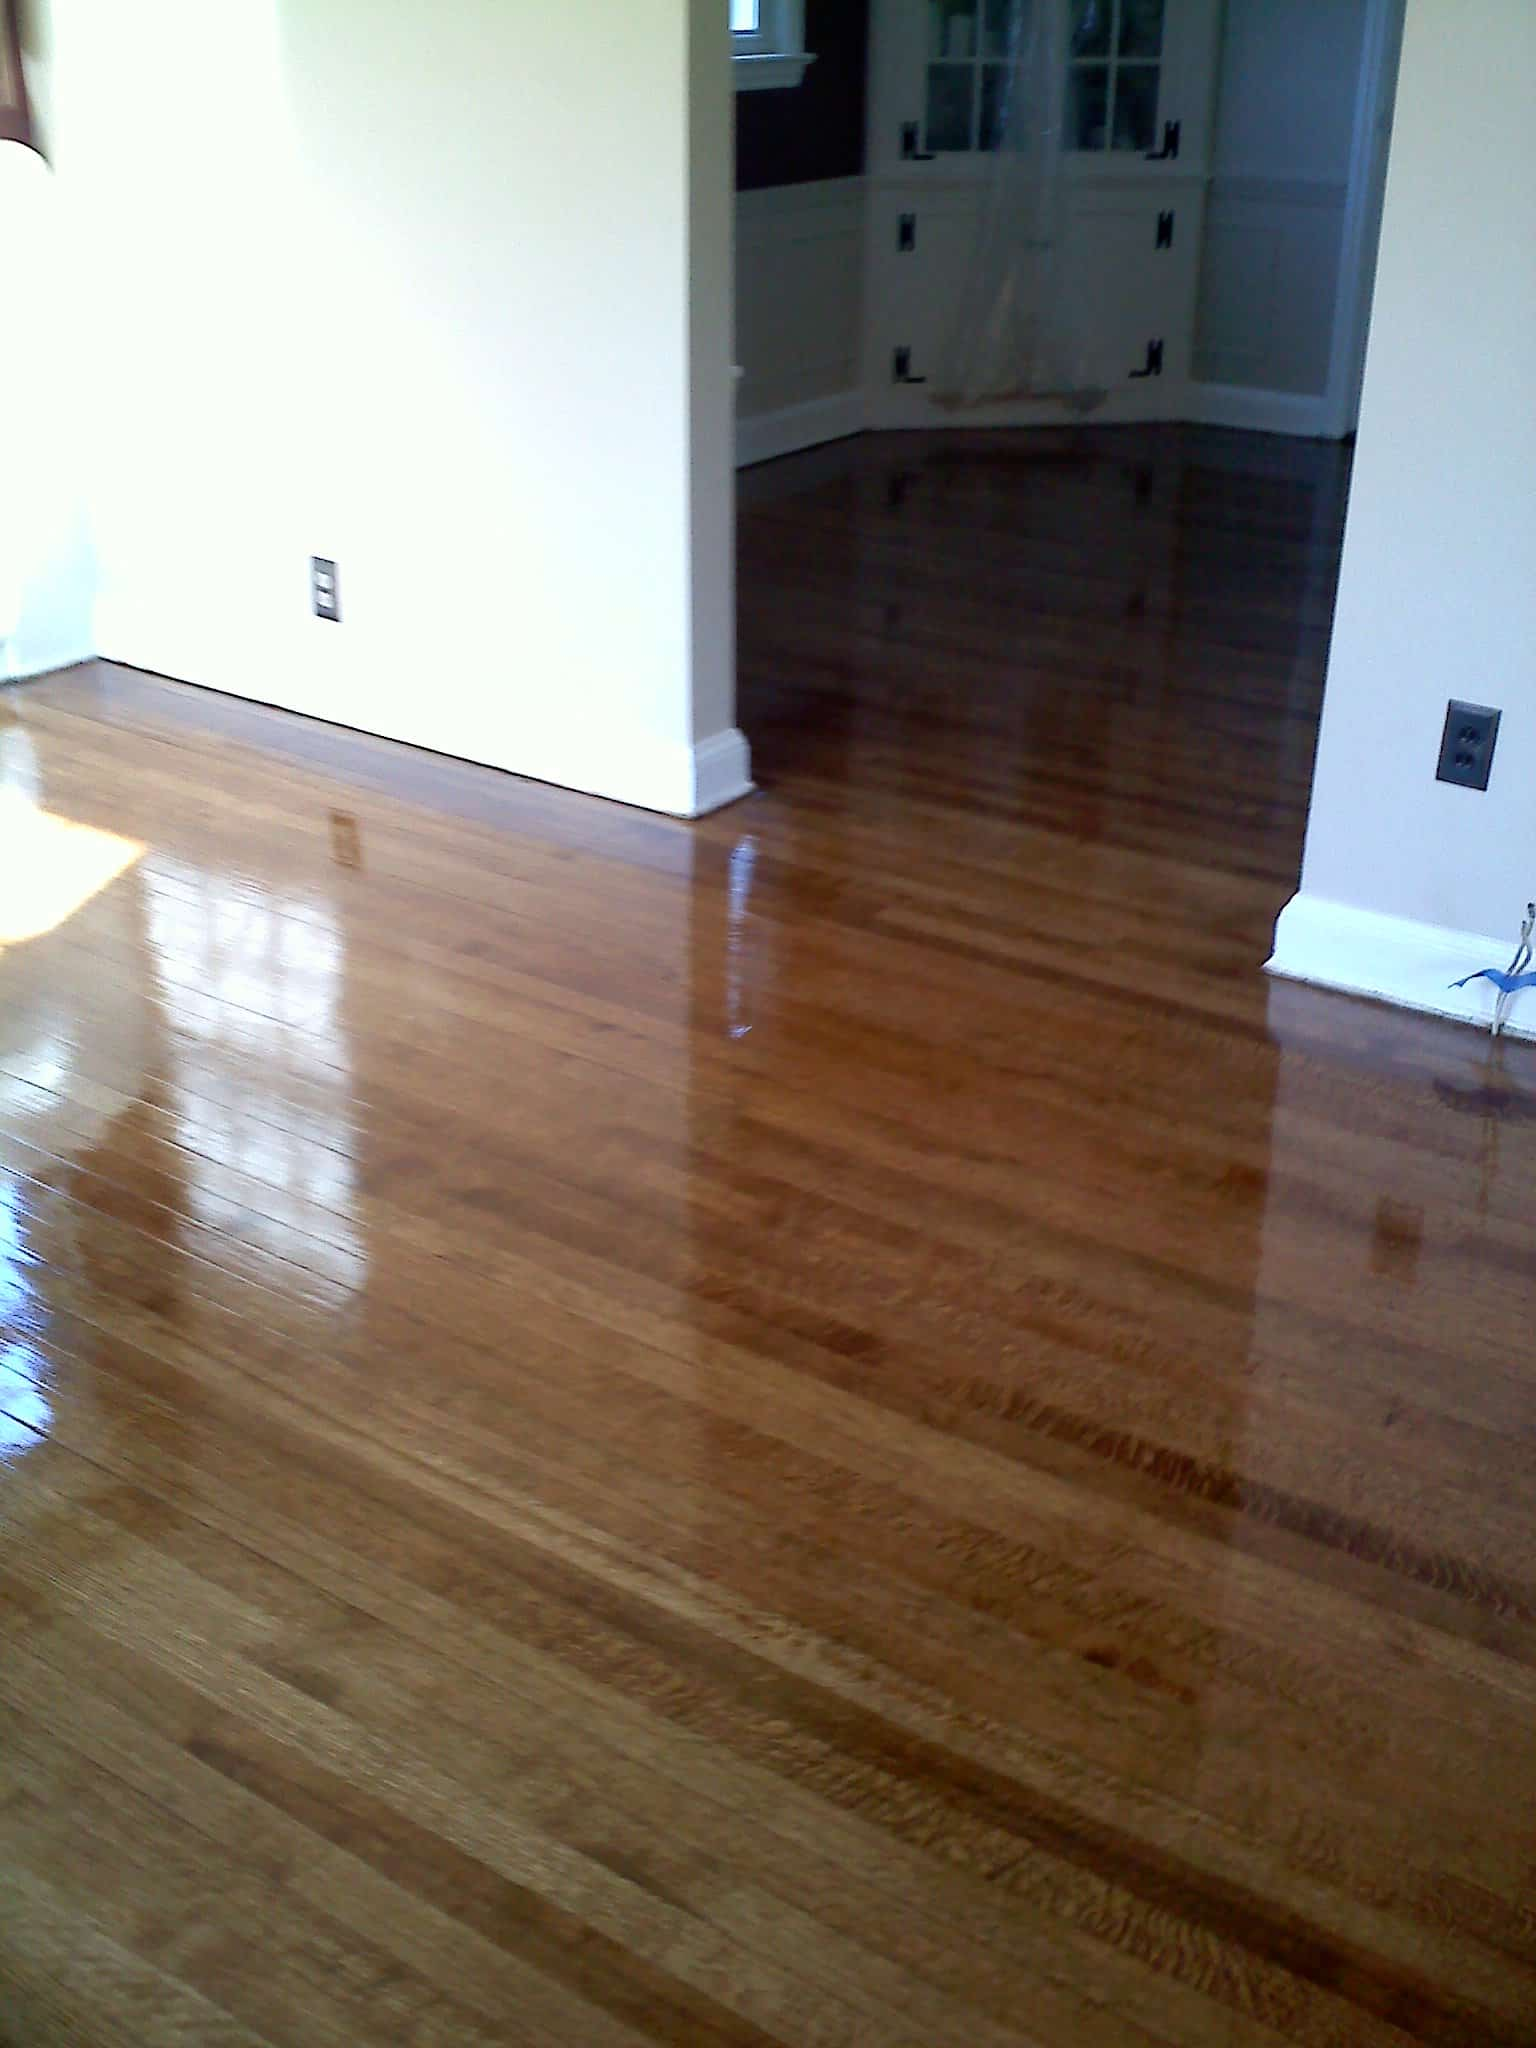 Refinishing restoring hardwood flooring merrick long for Hardwood flooring inc